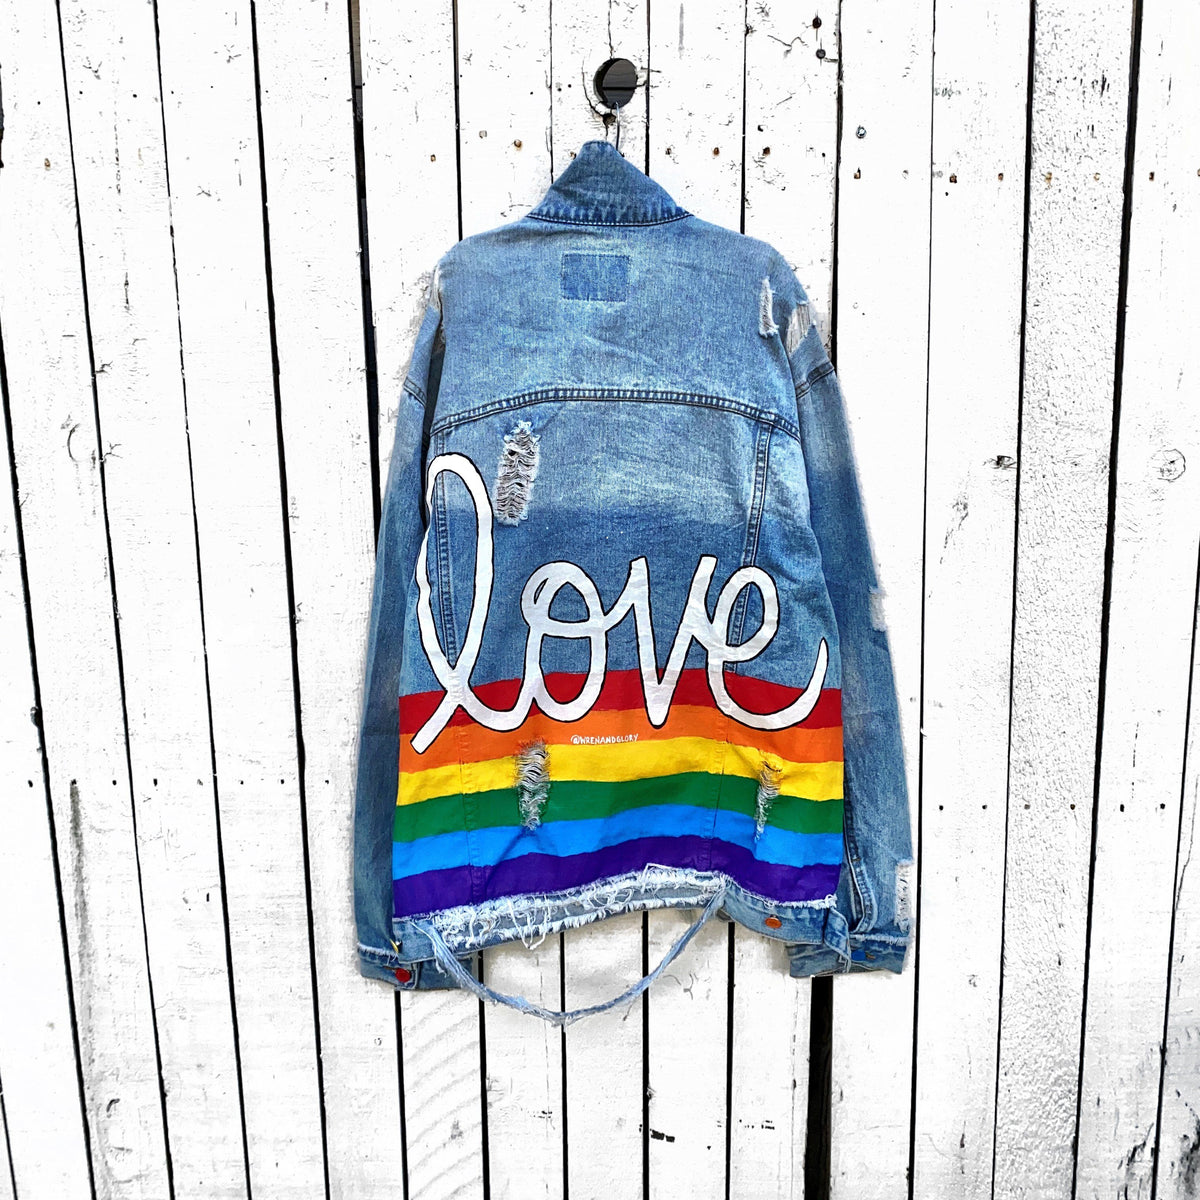 'PROUD' DENIM JACKET